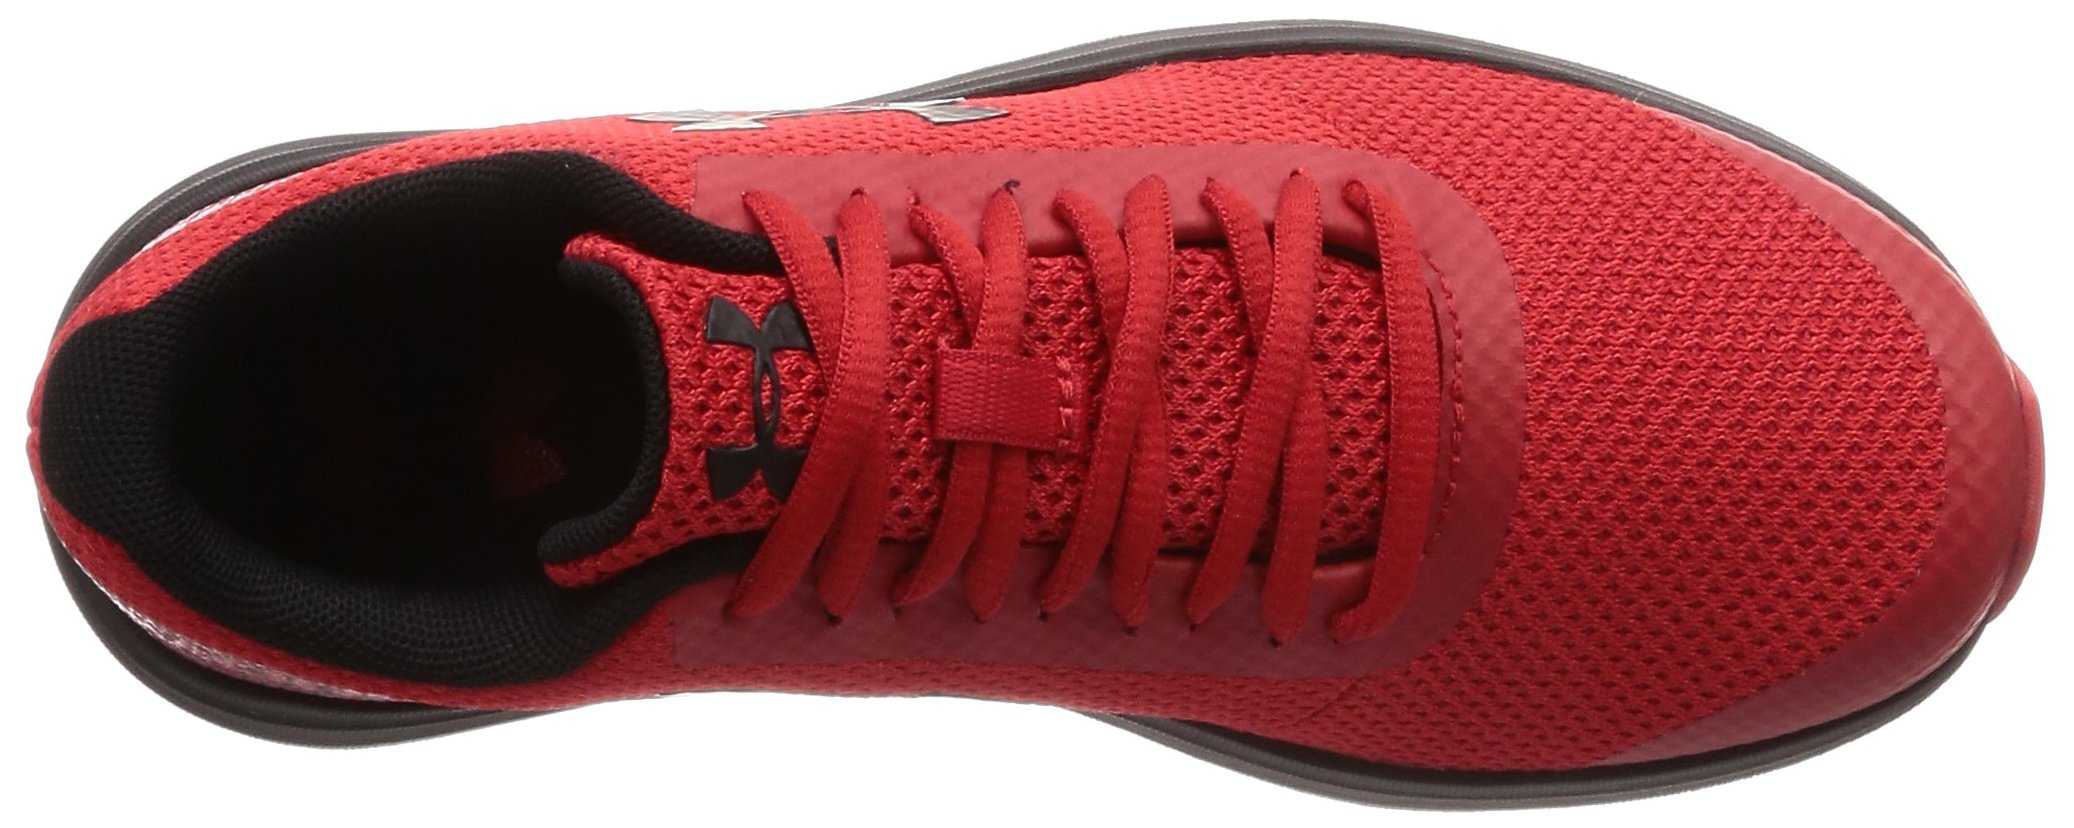 Under Armour Boys' Grade School Surge RN Sneaker, Red (600)/Black, 3.5 by Under Armour (Image #11)